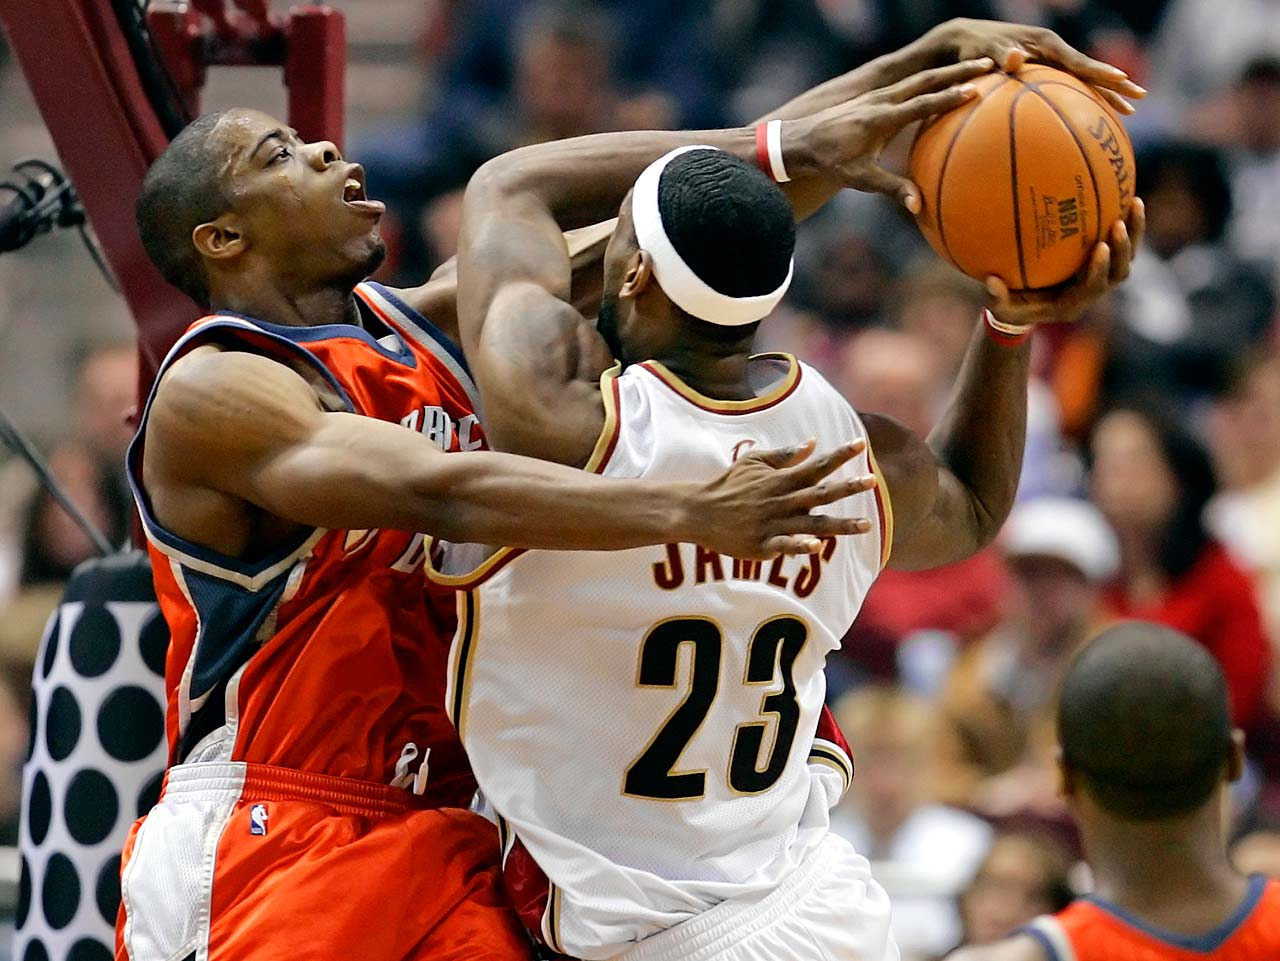 Charlotte Bobcats Bernard Robinson fouls LeBron James during a March 22, 2006, game in Cleveland.